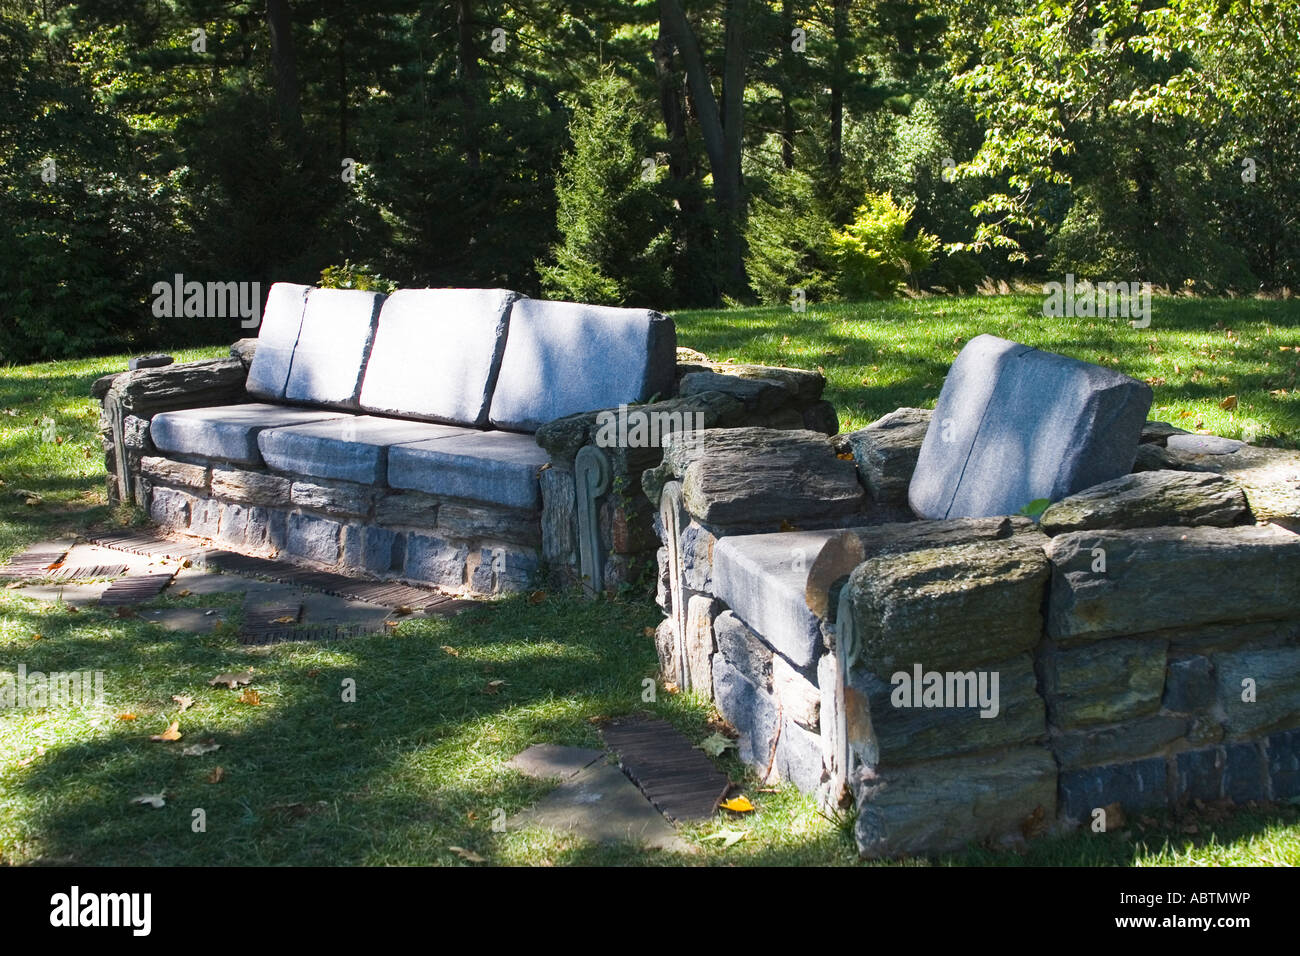 Sessel Stein Stein Sofa Und Sessel In Chanticleer Gärten Stockfoto Bild